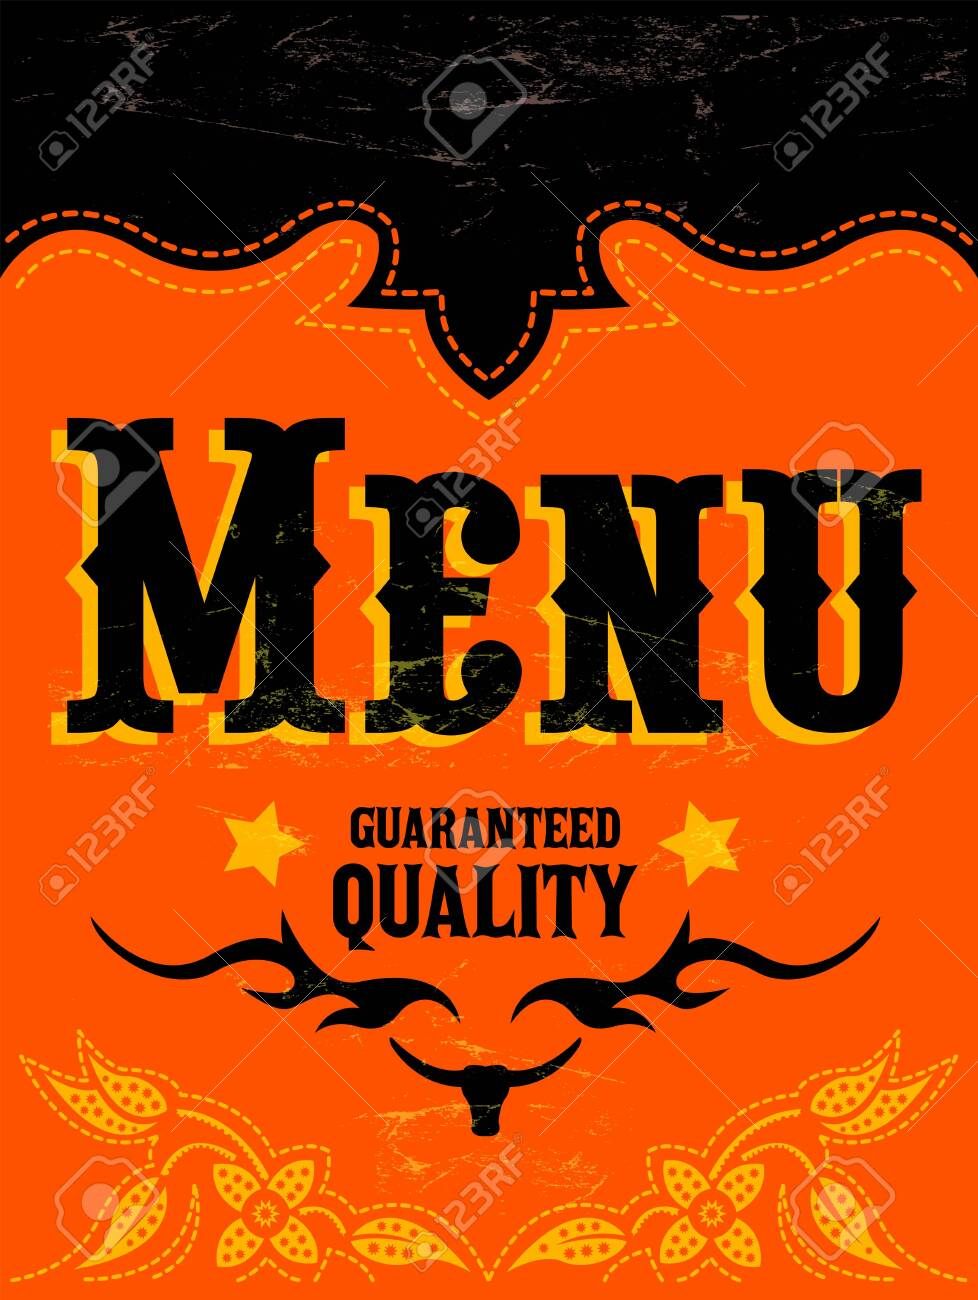 Restaurant Menu Design Western Wild West Style Vector Cover Royalty Free Cliparts Vectors And Stock Illustration Image 128924604